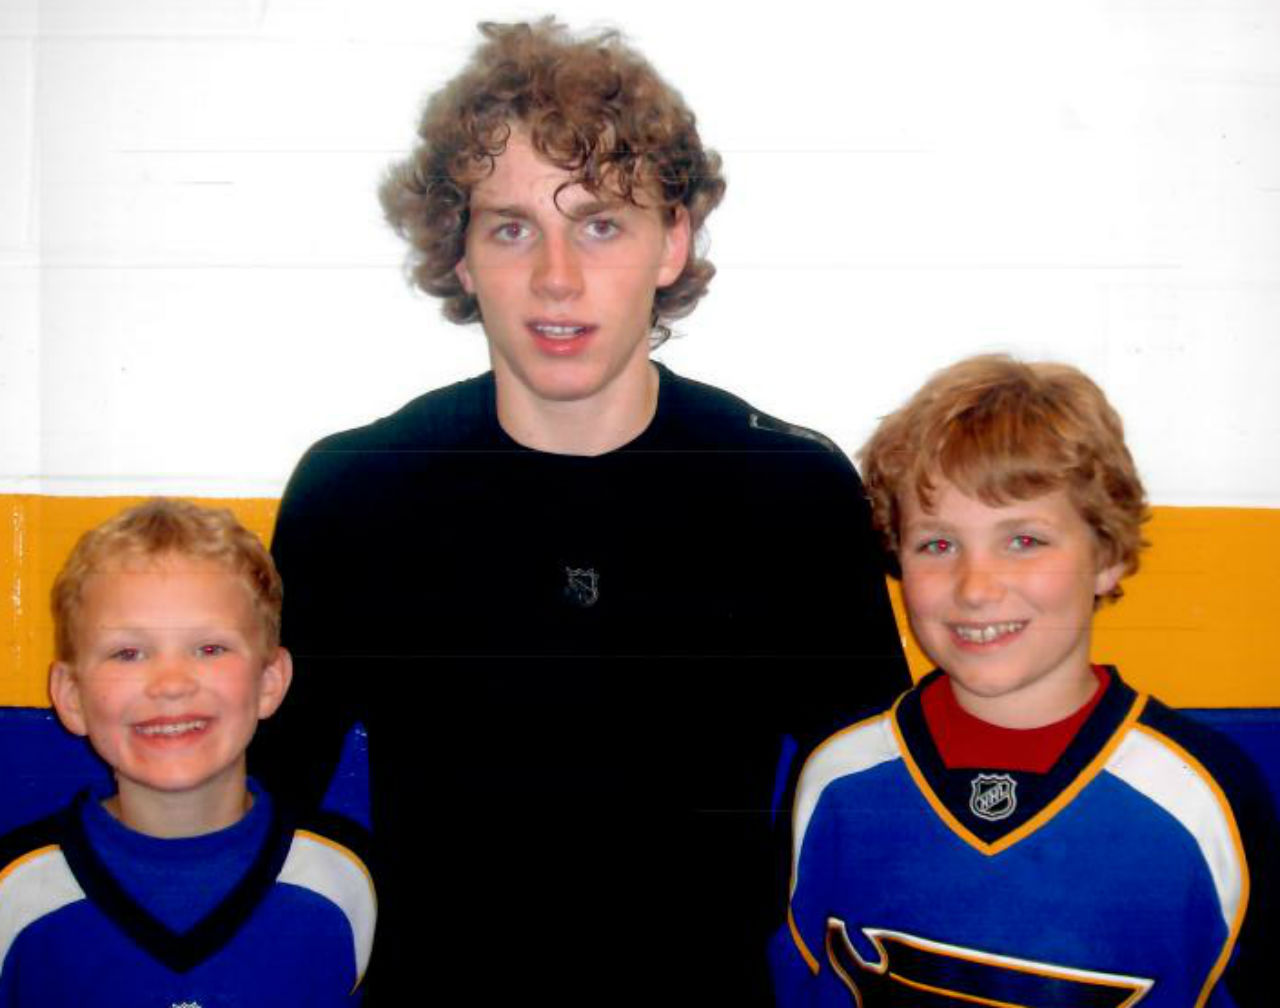 Patrick Kane poses with a young Brady (L) and Matthew Tkachuk.